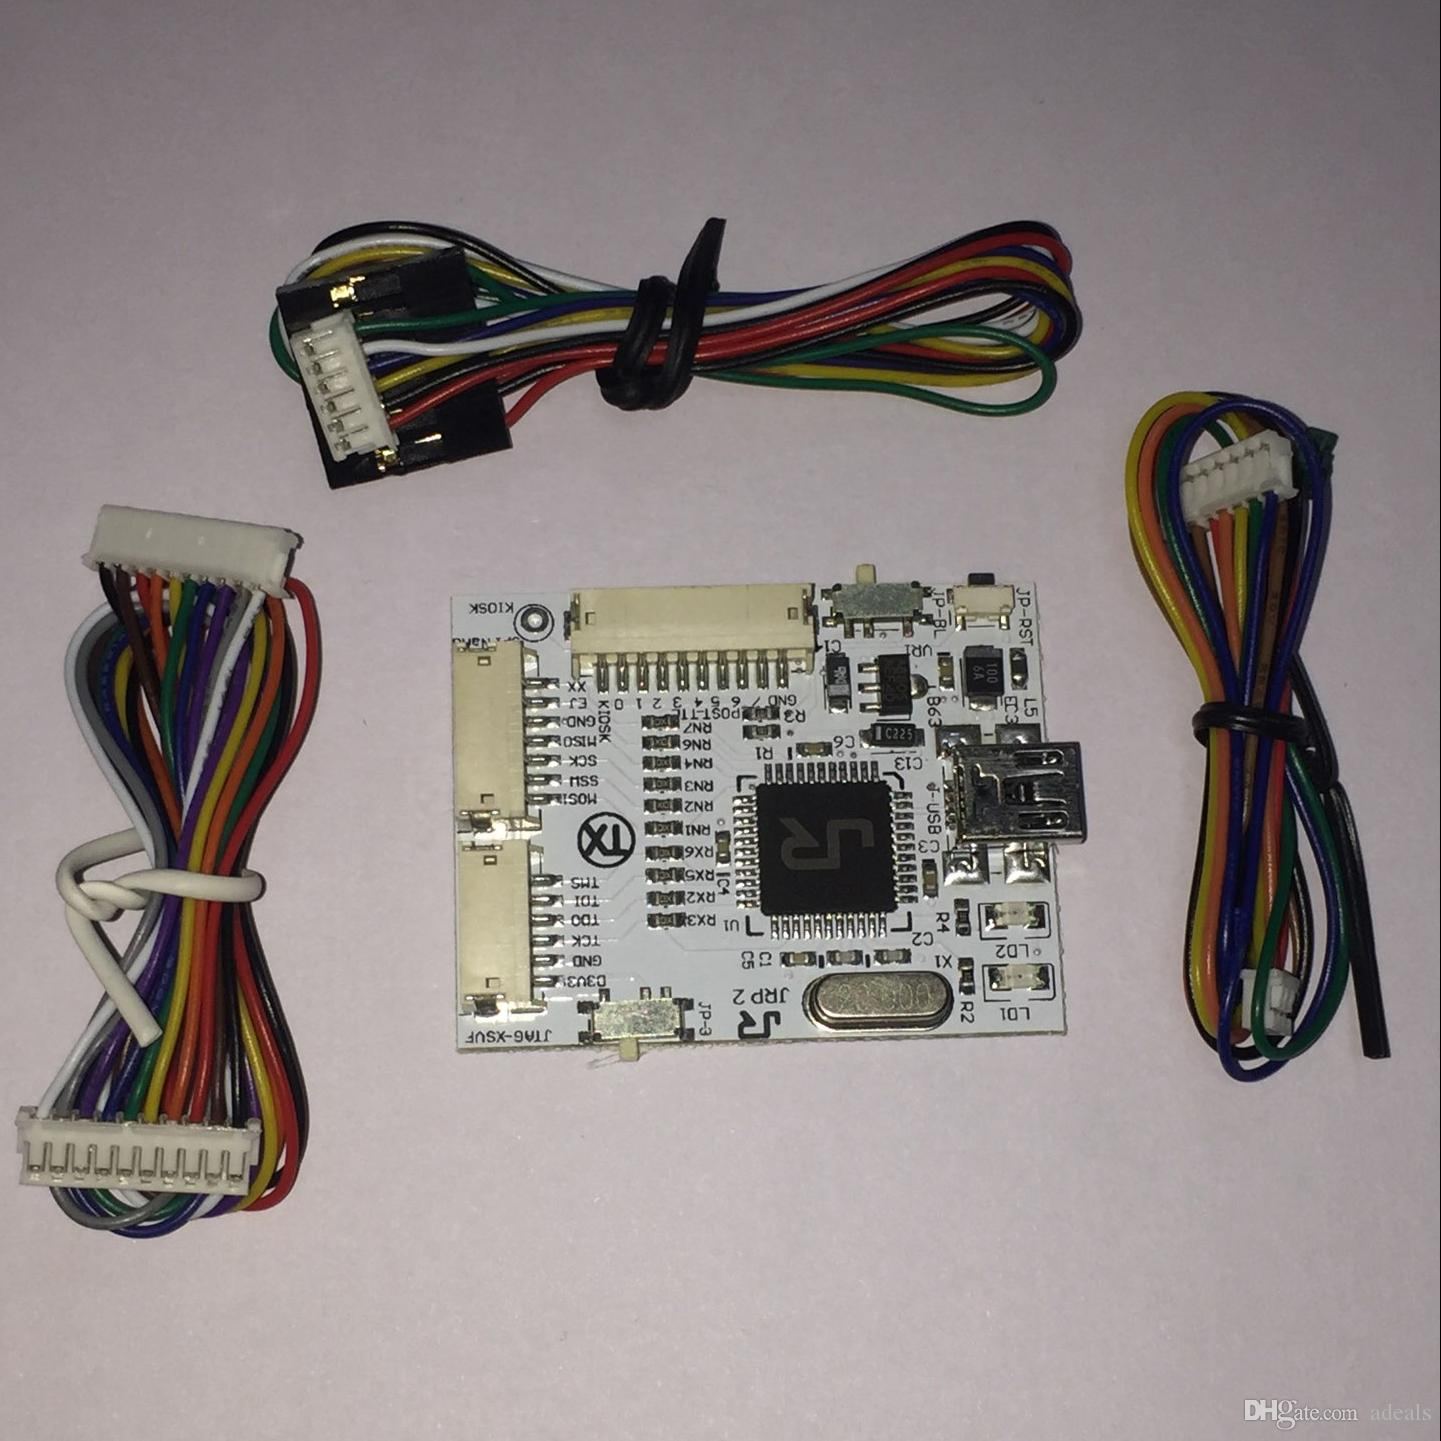 Online Cheap 100 New J R V2 Jr Programmer Jrp Nand Kit By Adeals Electronic Circuit